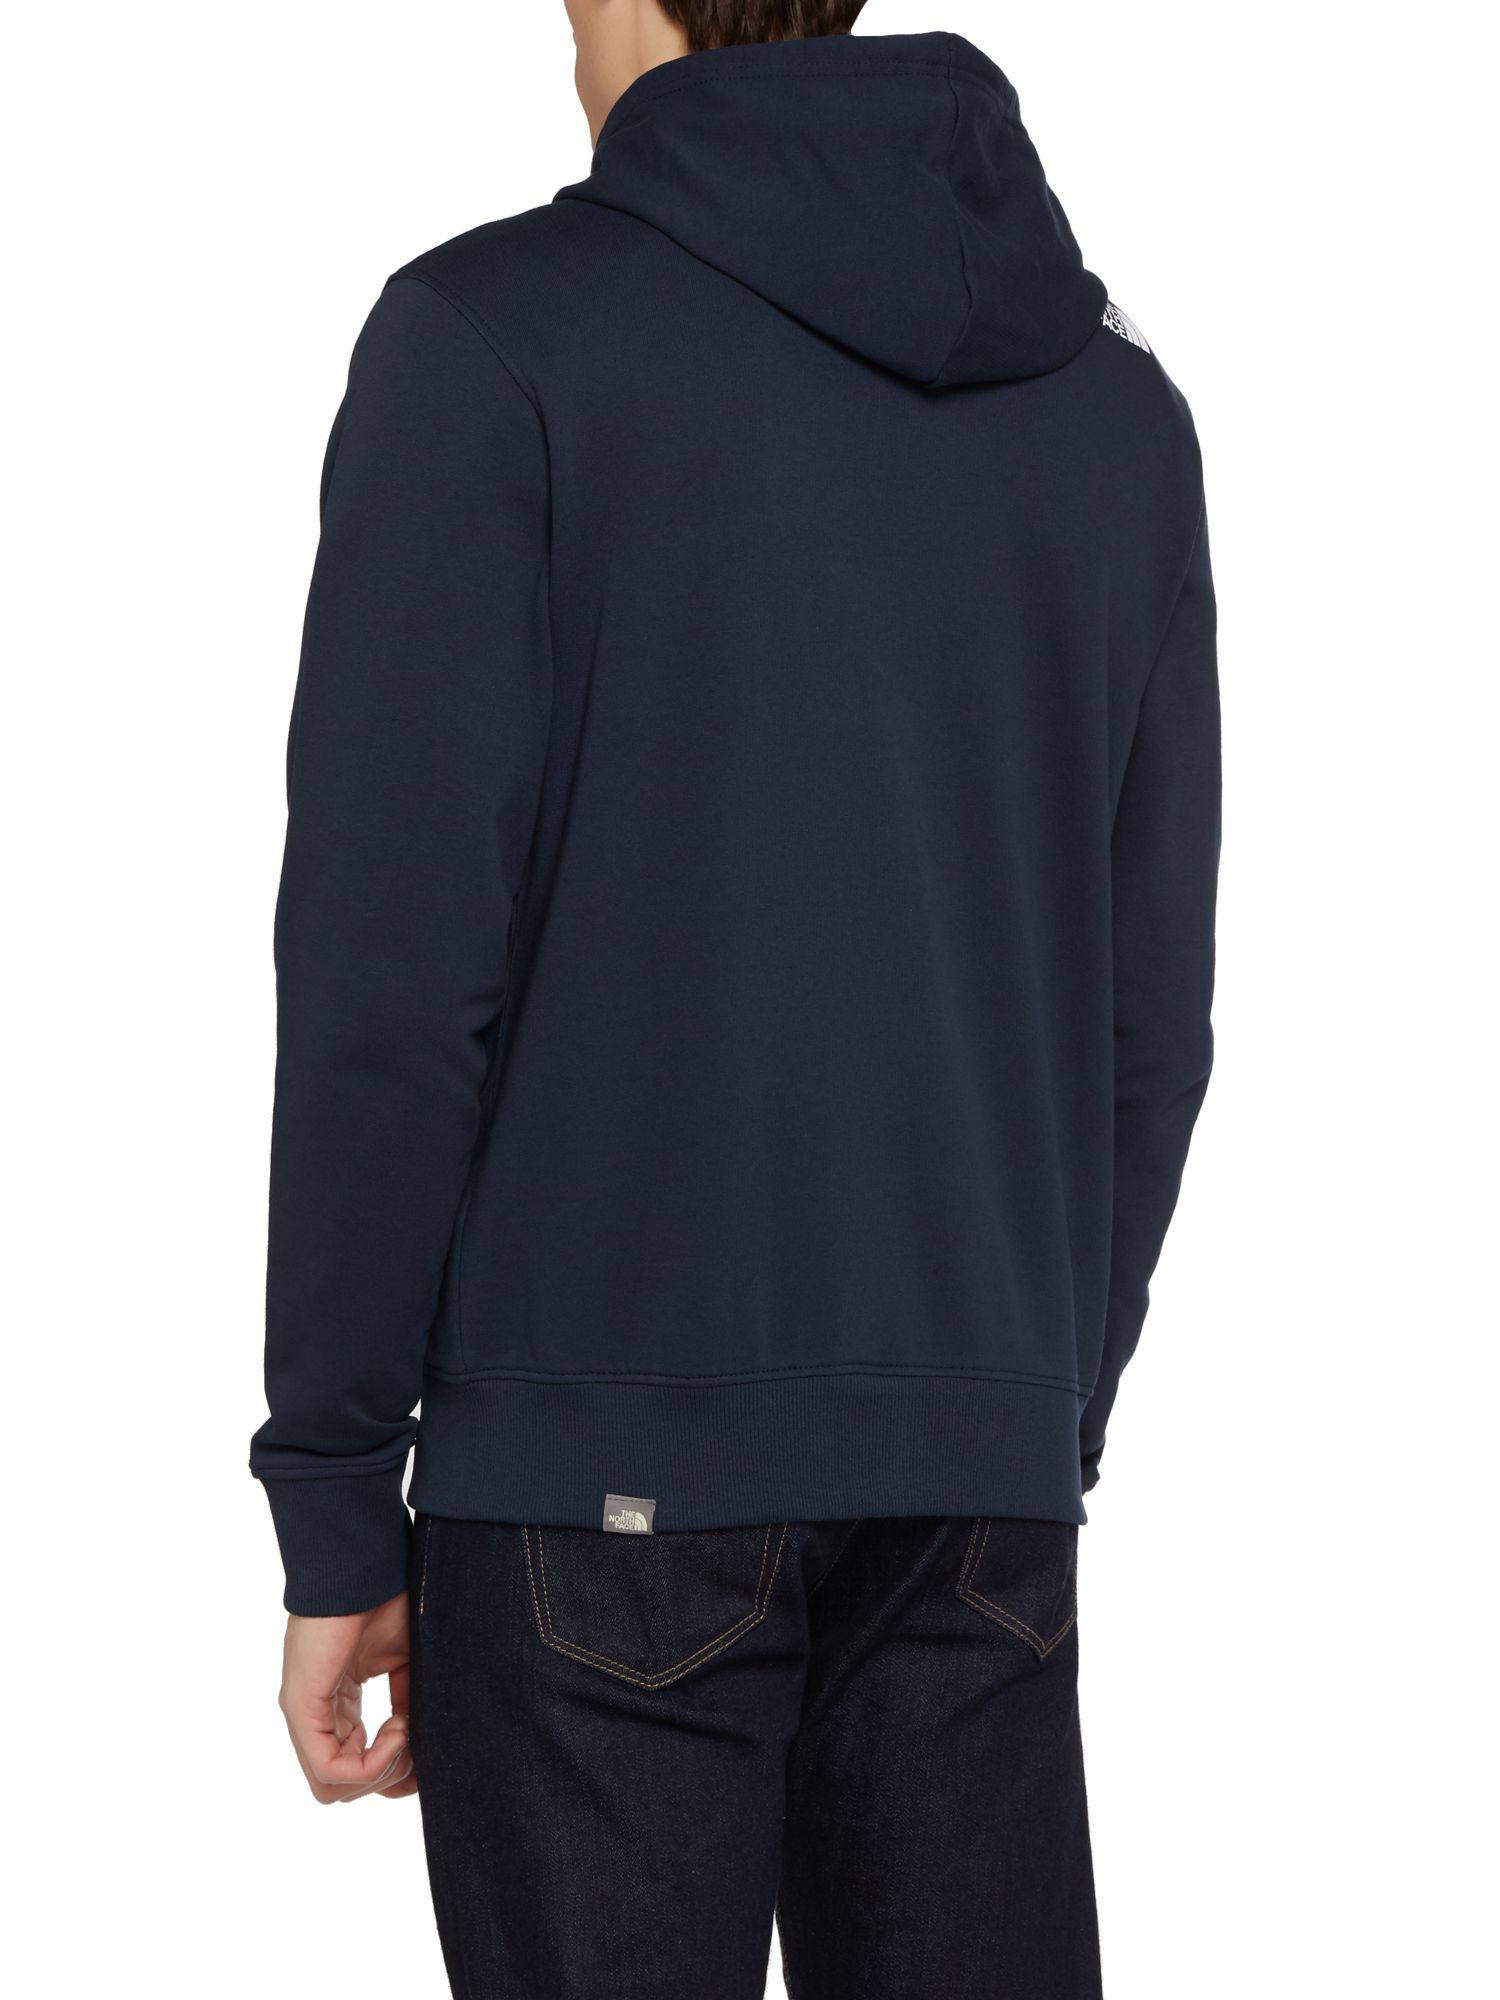 The North Face Cotton Open Gate Full Zip Hoodie in Navy (Blue) for Men